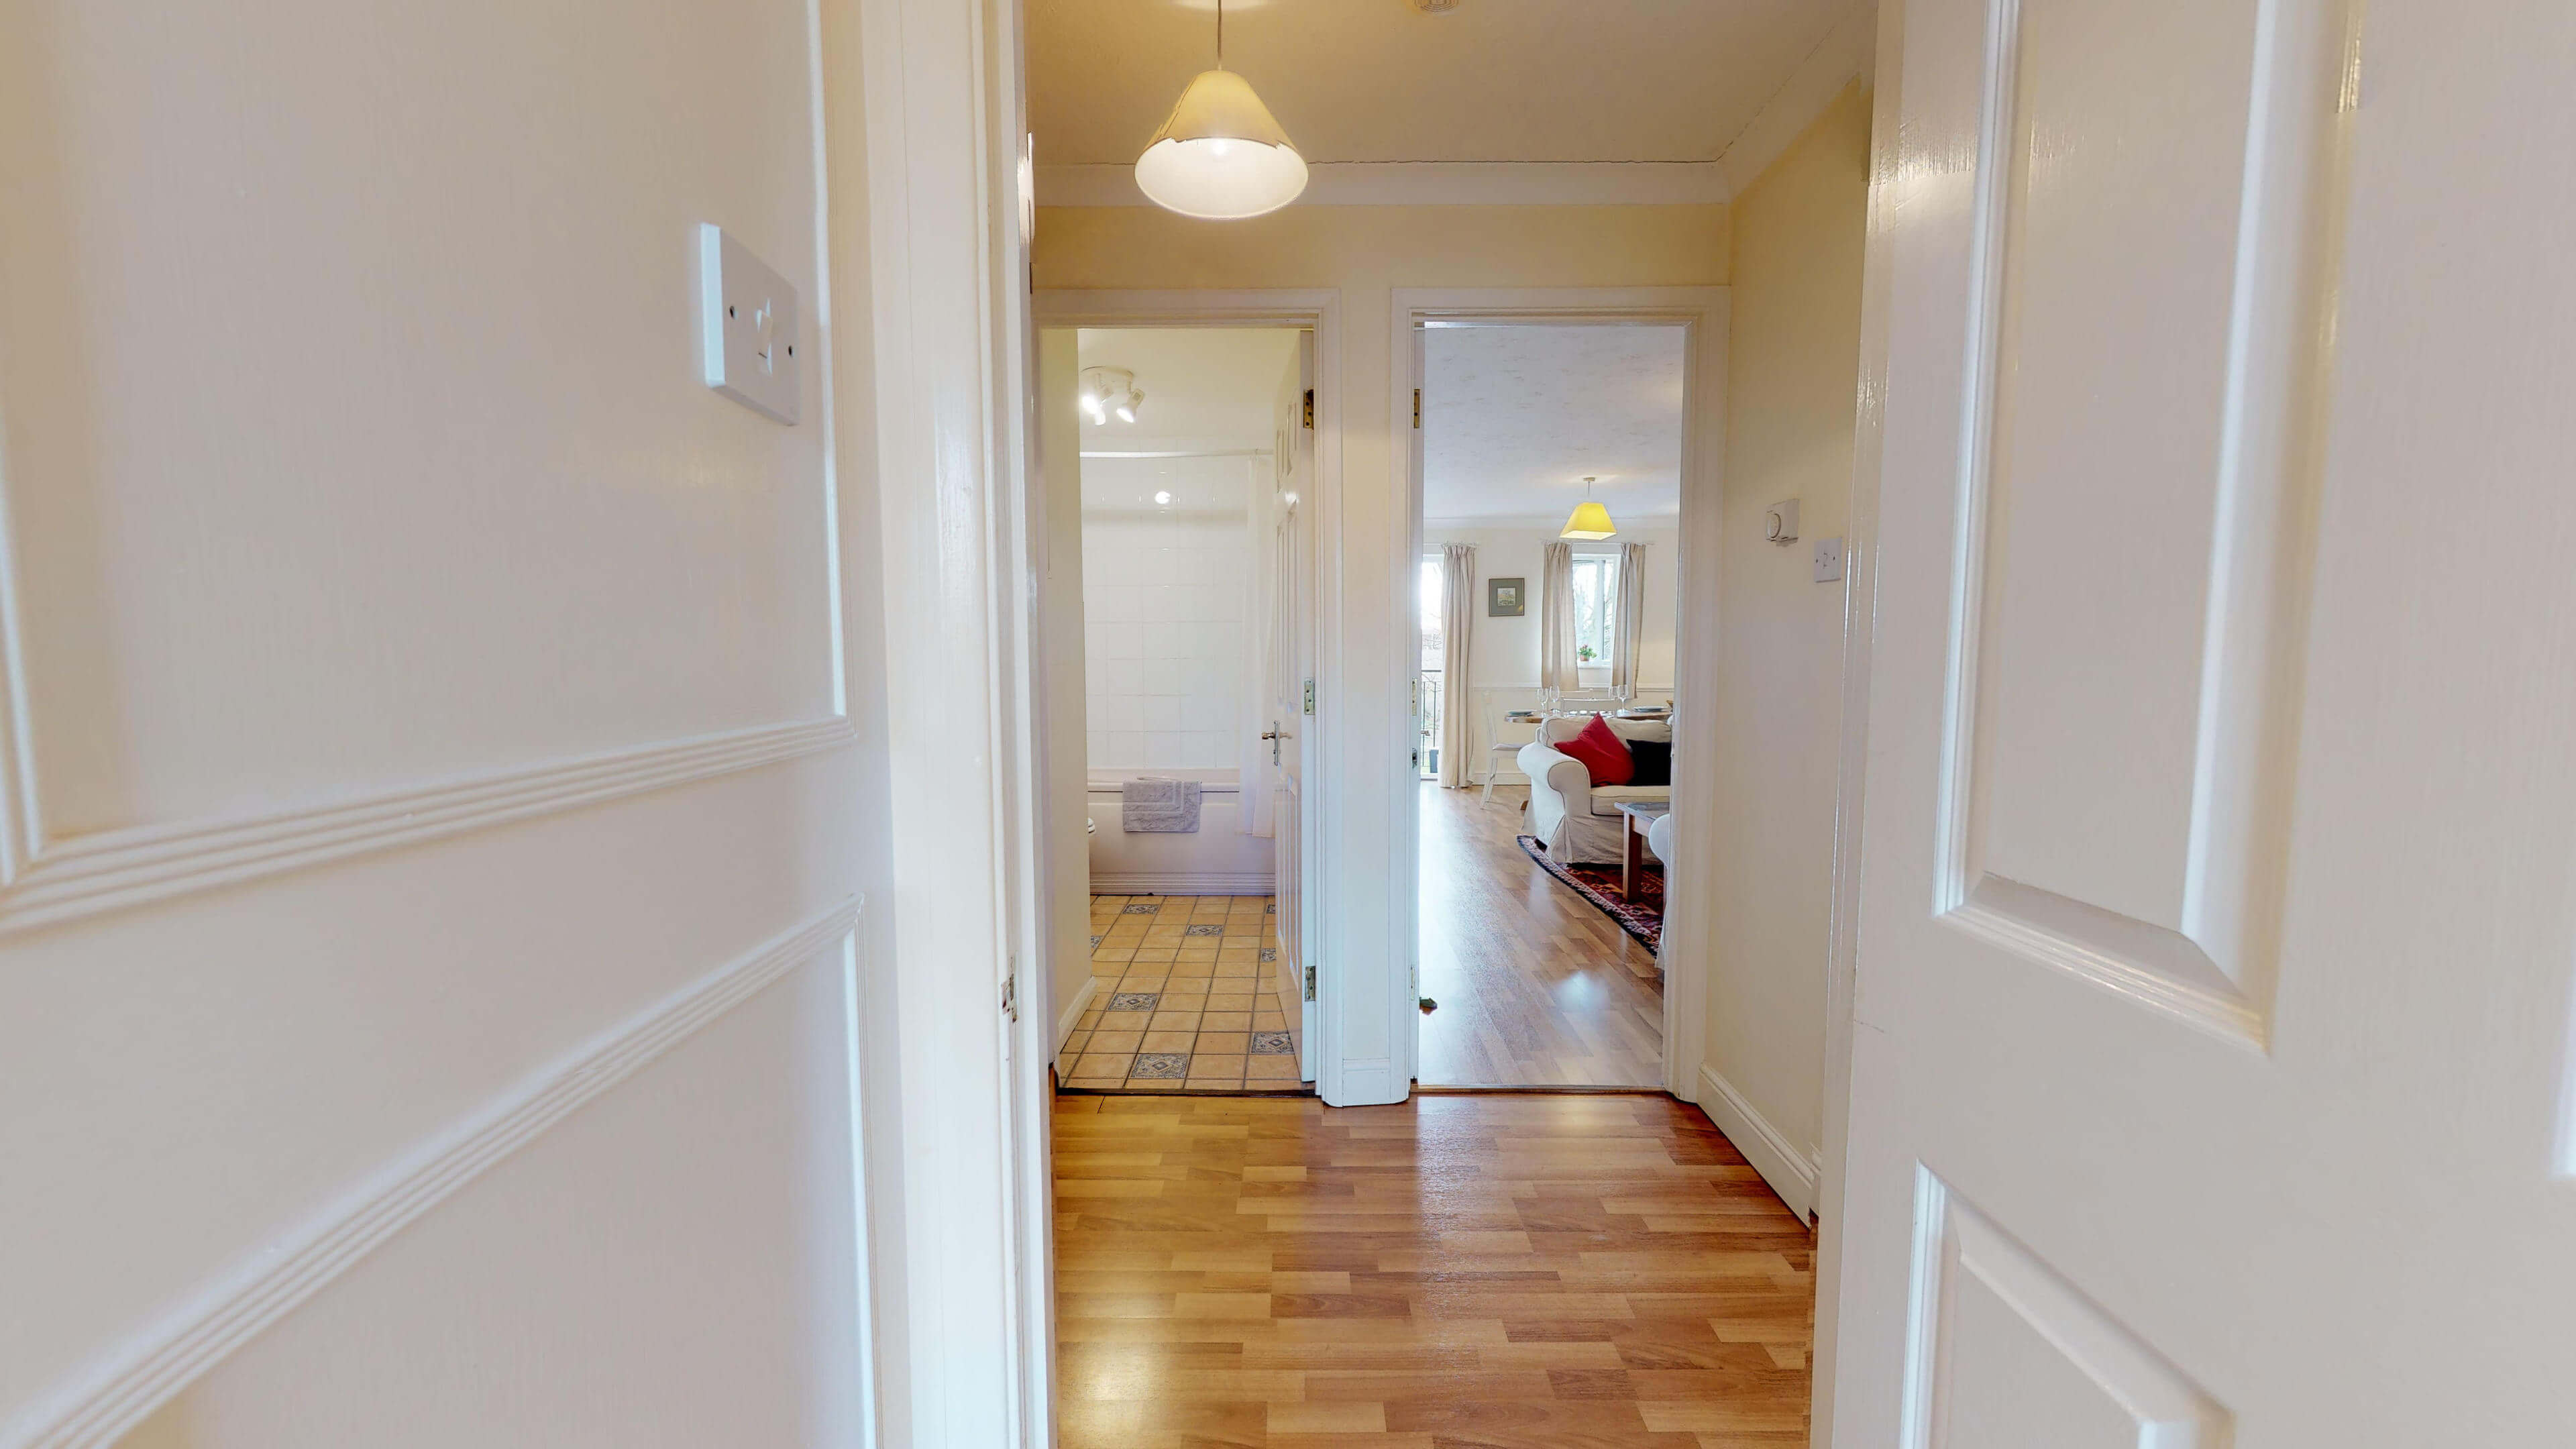 Millbank Oxford City Centre Short Stay Apartment Sleeps 4 Hall View